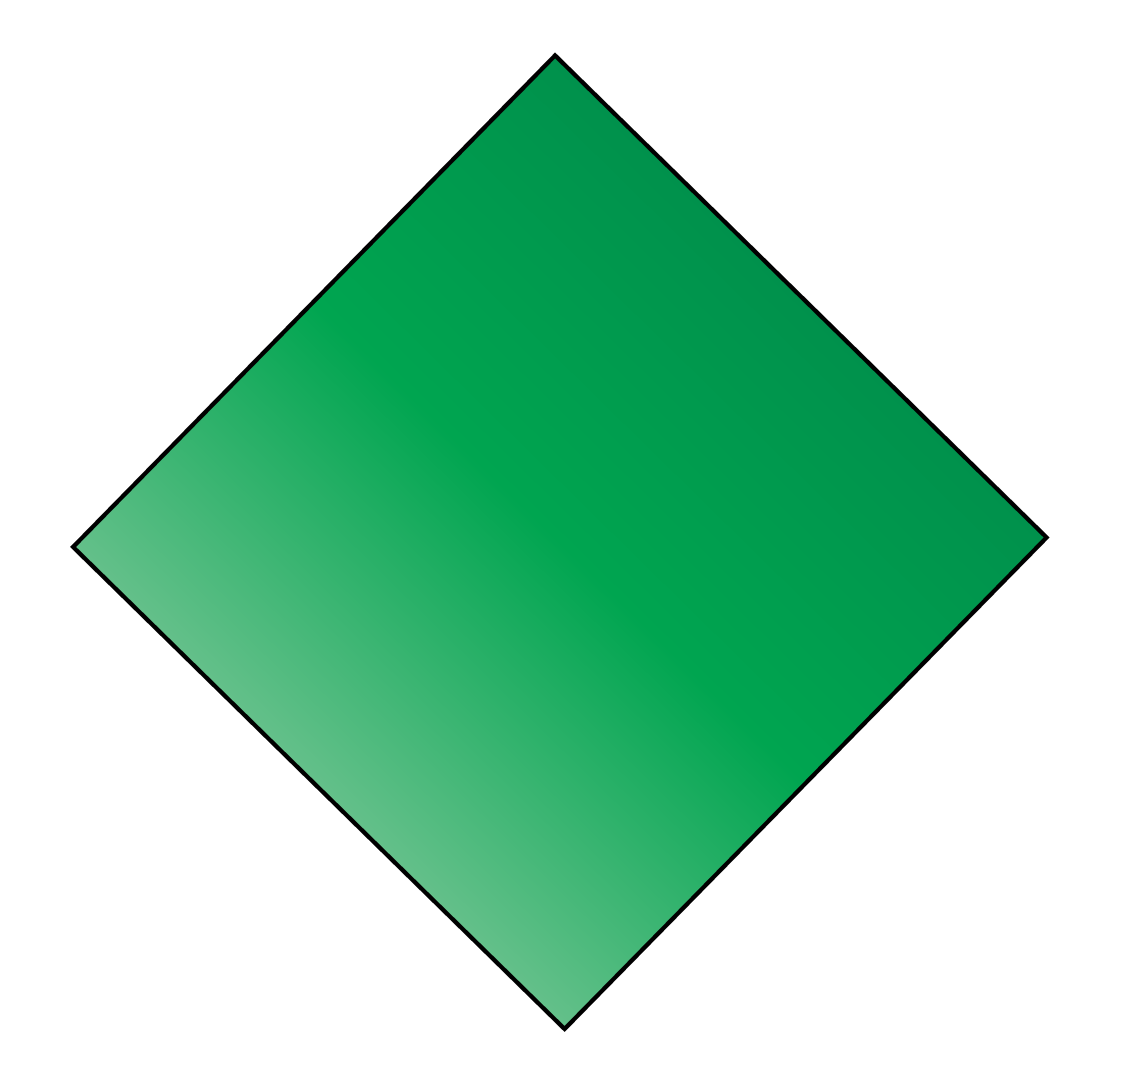 quadrilateral - 2d shape